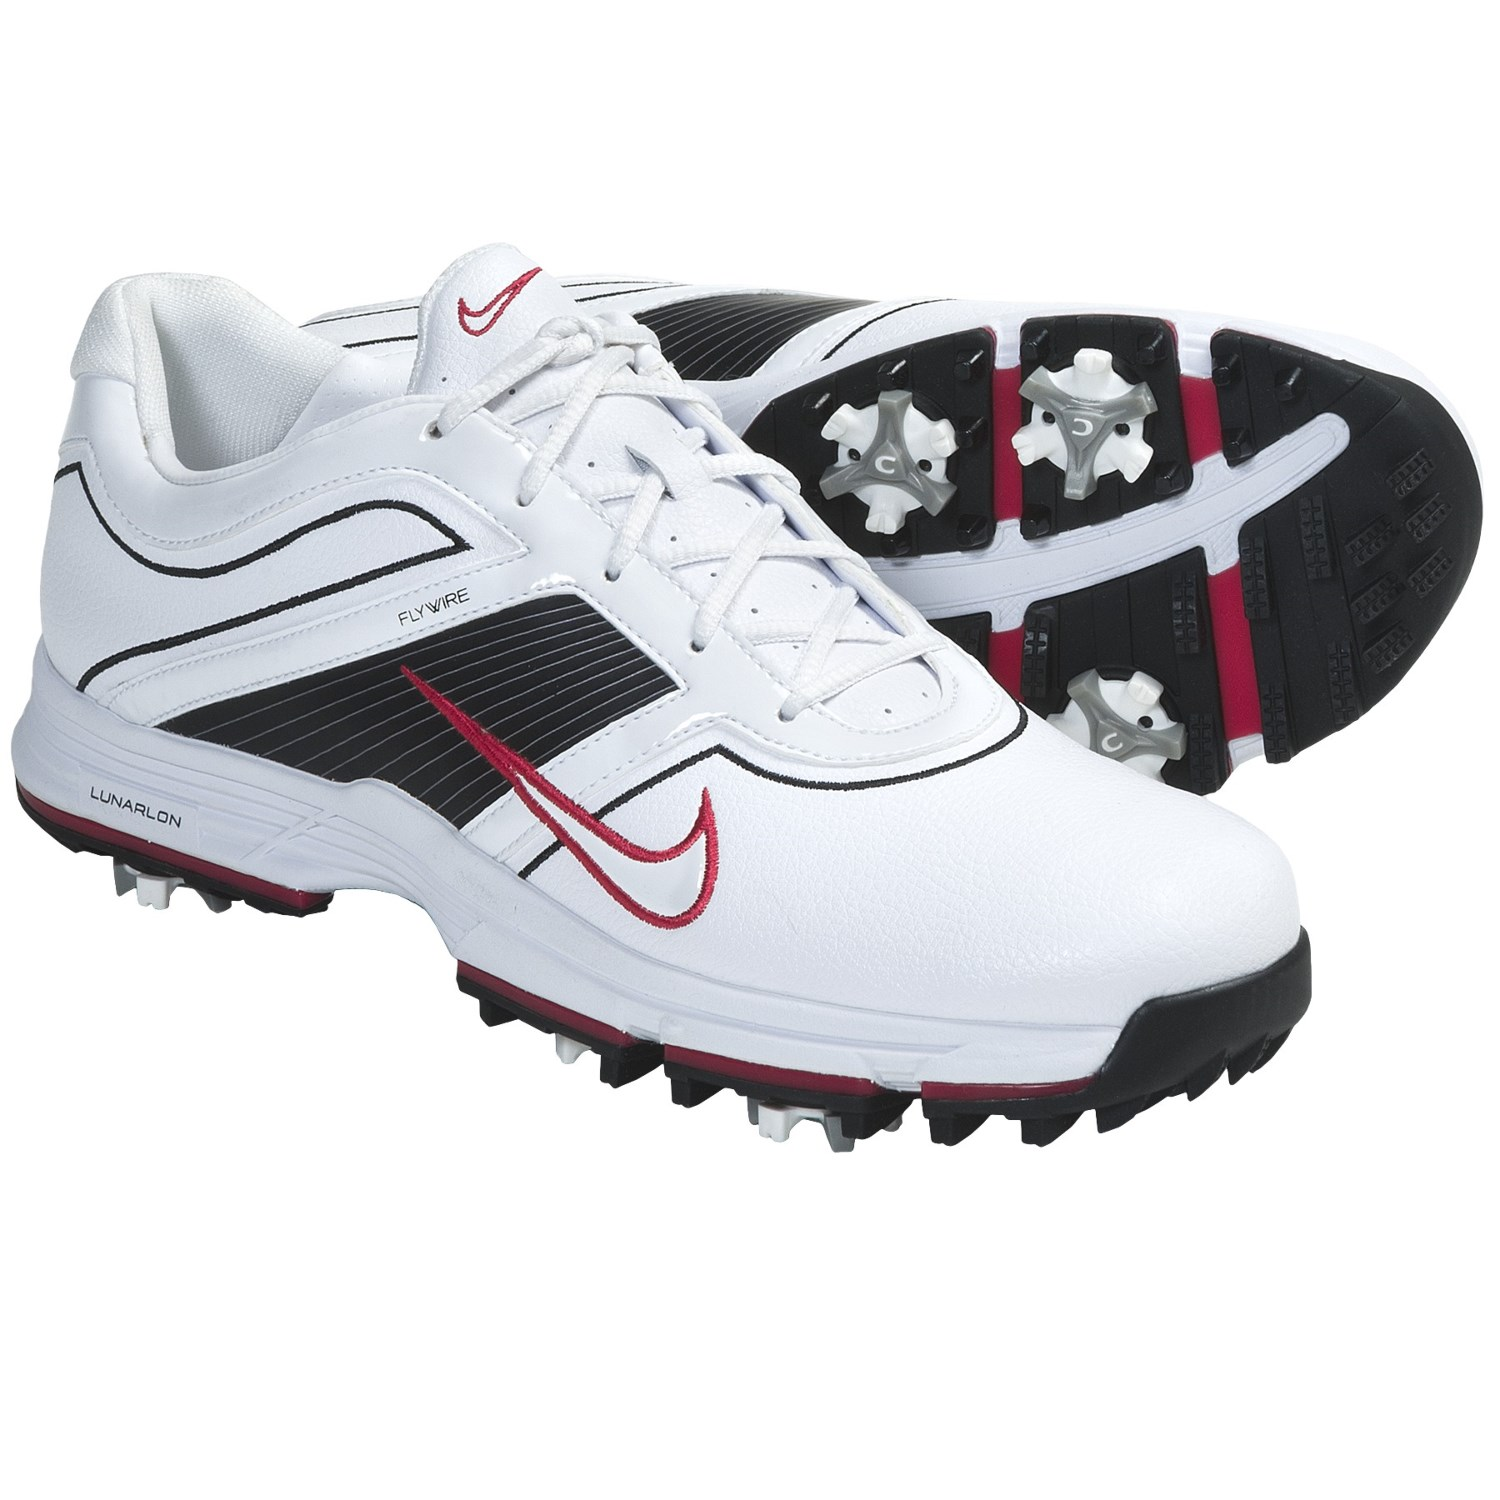 Nike Golf Nike Lunar Links Golf Shoes (For Women) - Save 54